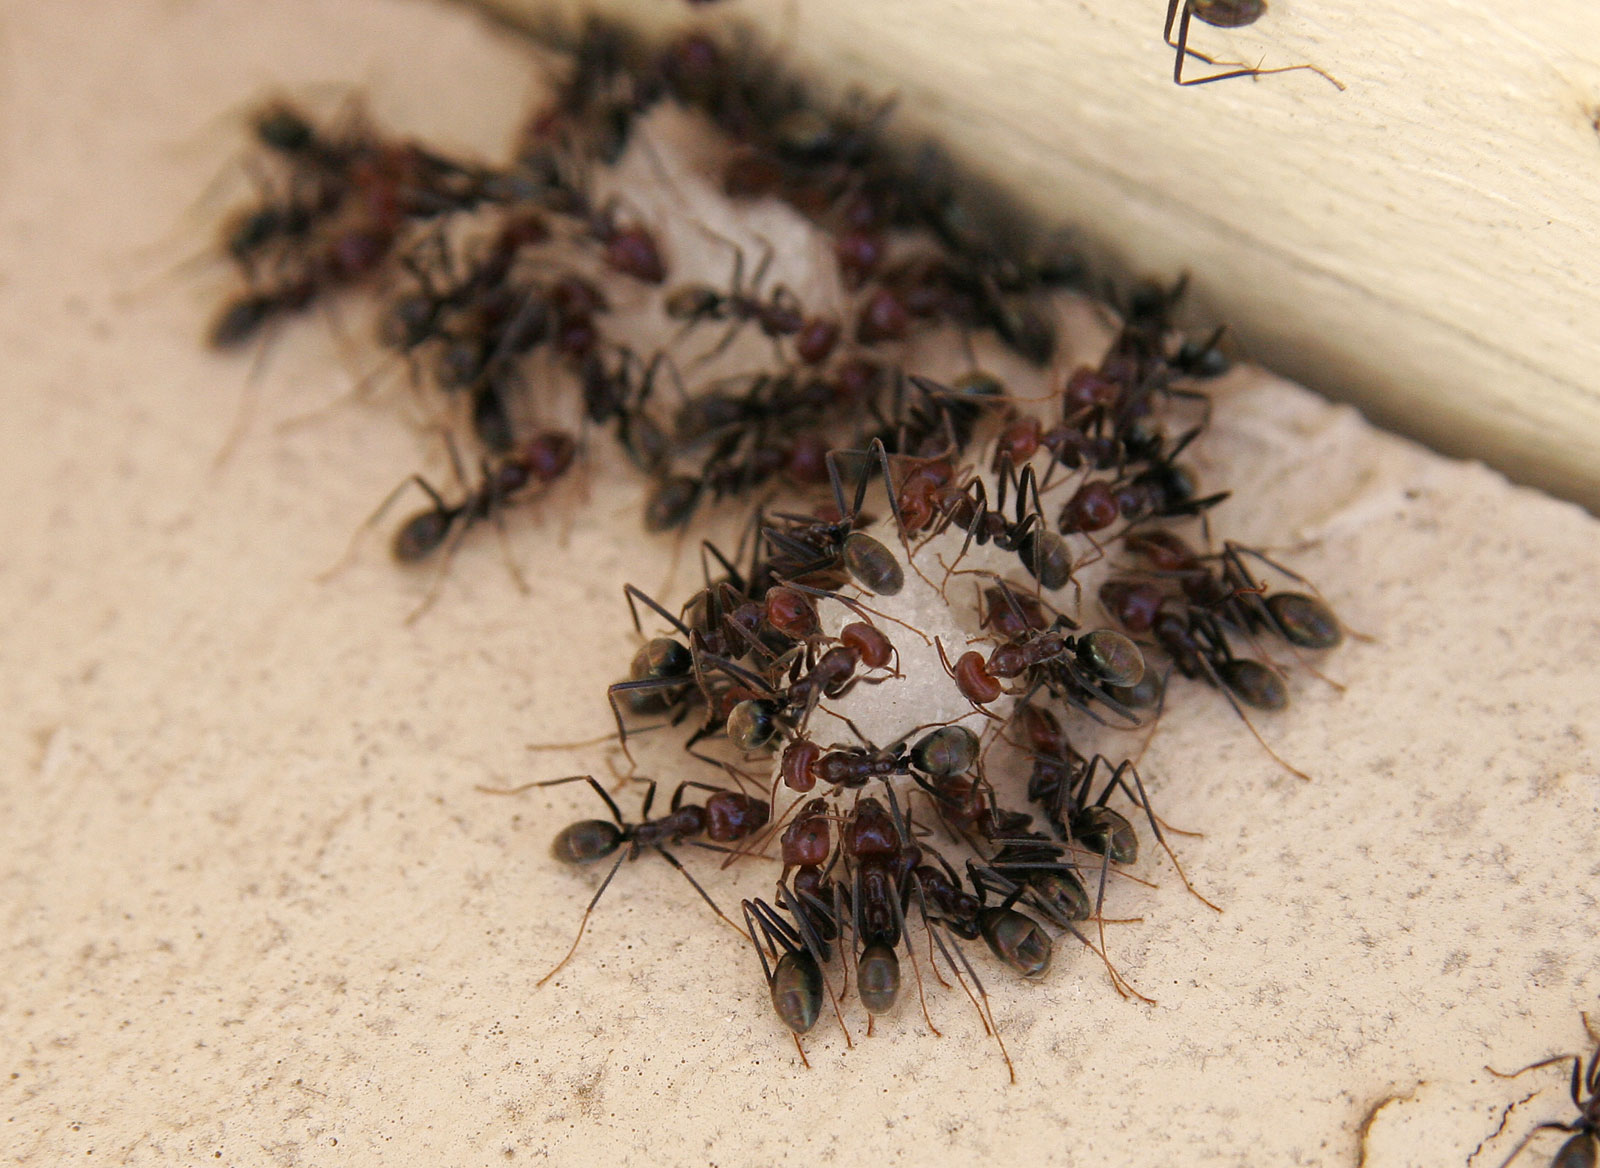 http://upload.wikimedia.org/wikipedia/commons/0/09/Ants_eating.jpg